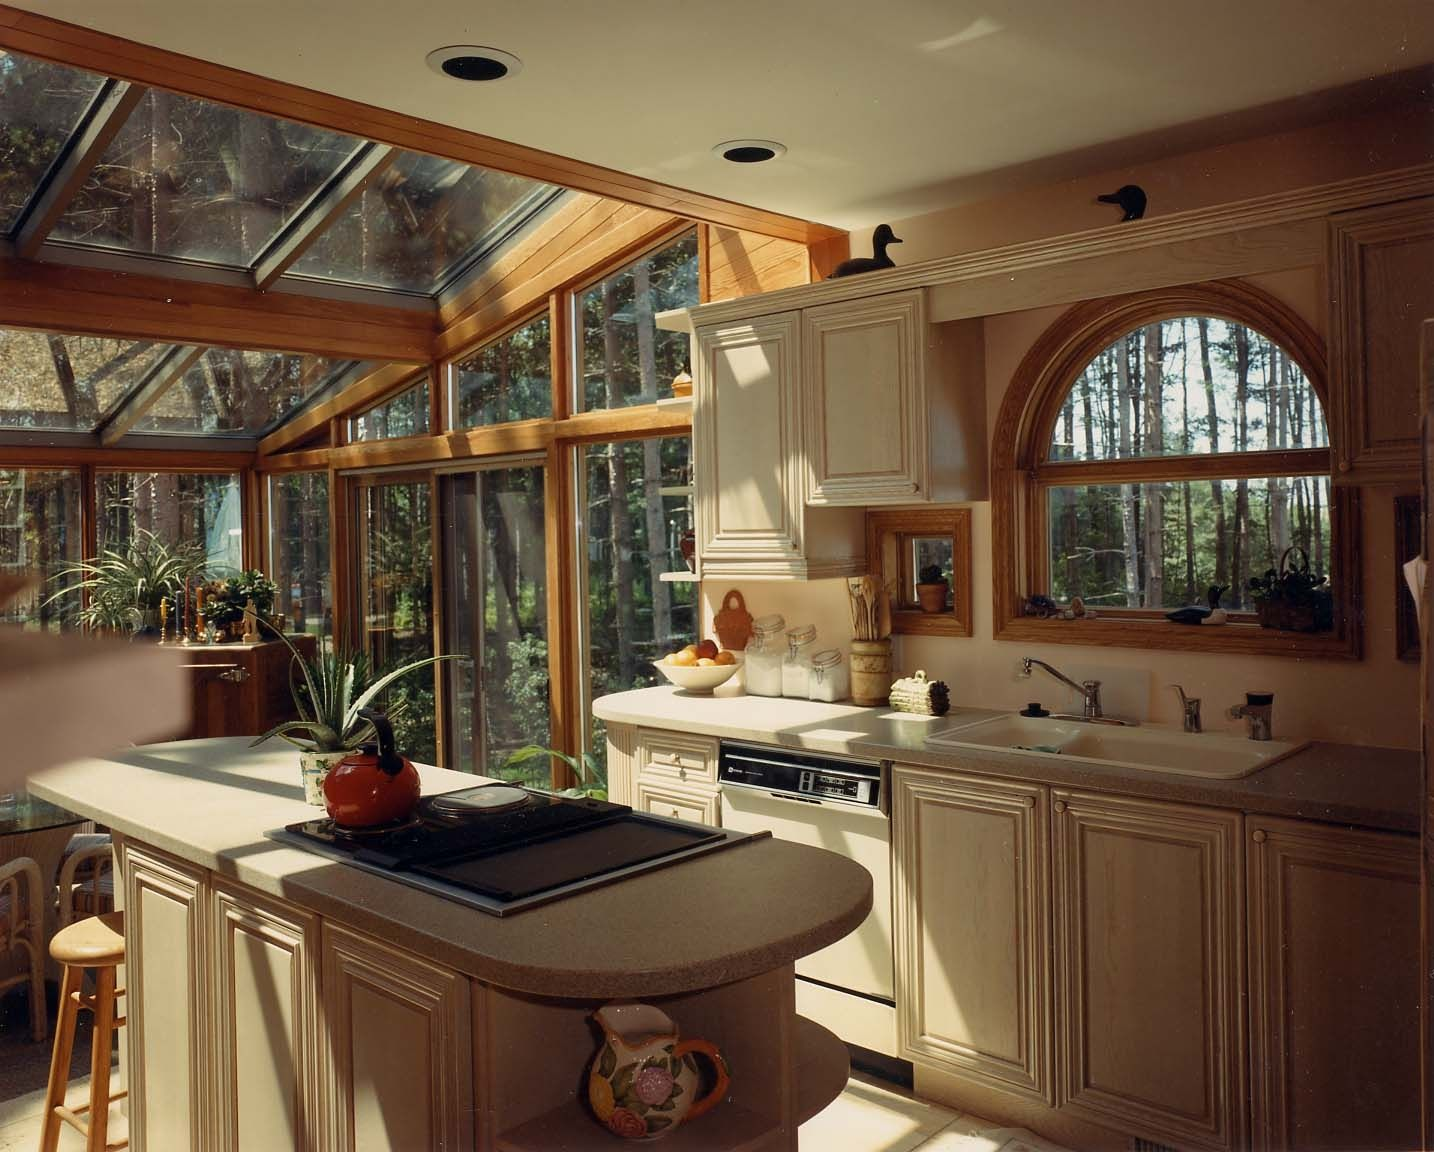 Lovely Contemporary Log Home Design With Glass Sunroom Ceiling Idea Also Arched  Window And Cool Small Kitchen Island Prepare Your Best Escapism In The  Countryside ... Part 20